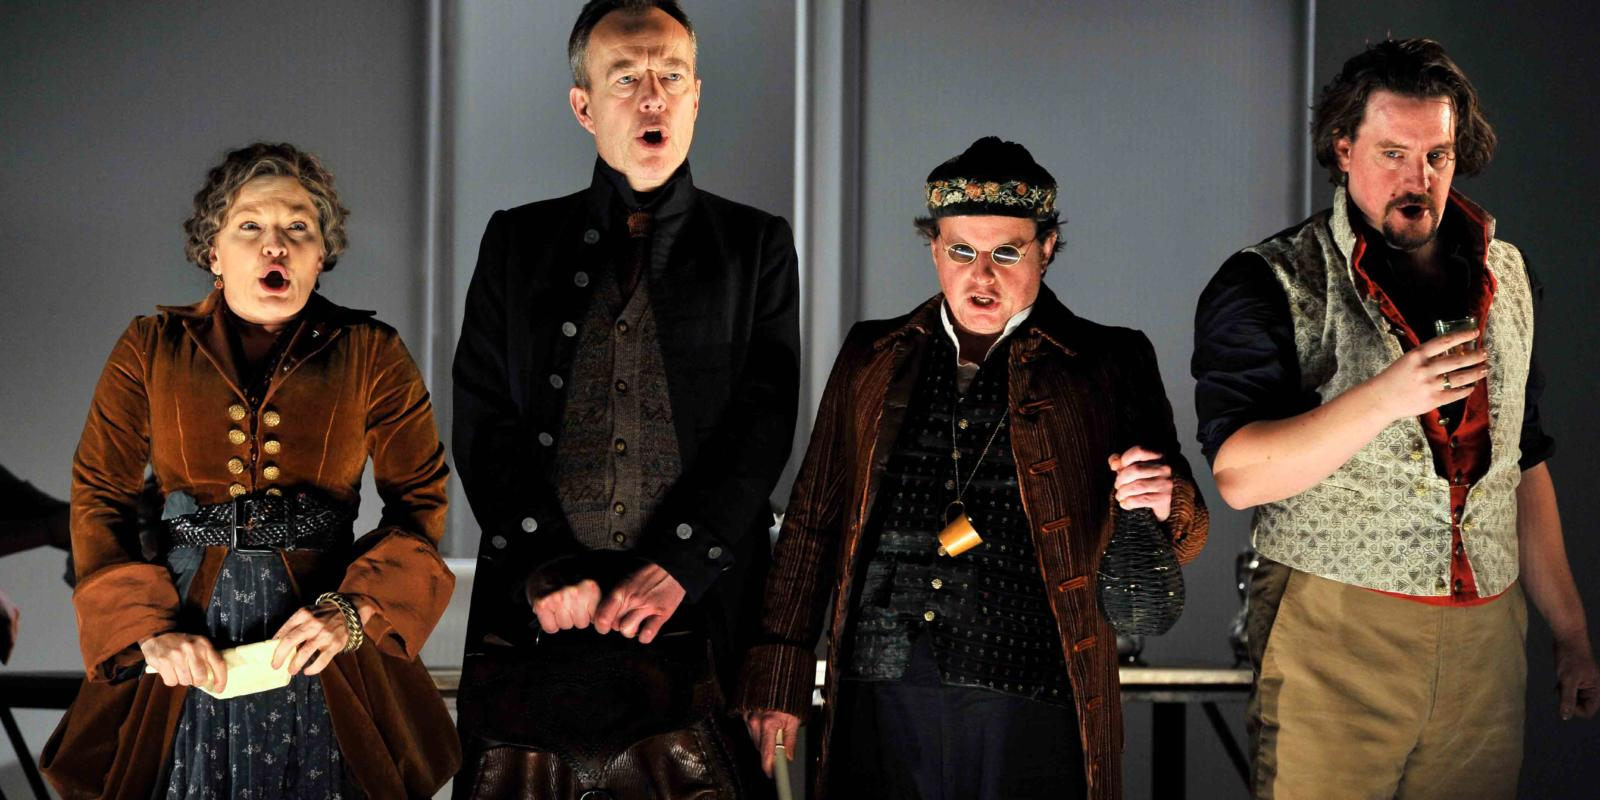 An image of Lucy Schaufer, Jonathan Best, Colin Judson and Benedict Nelson in Fiona Shaw's 2014 production of The Marriage of Figaro